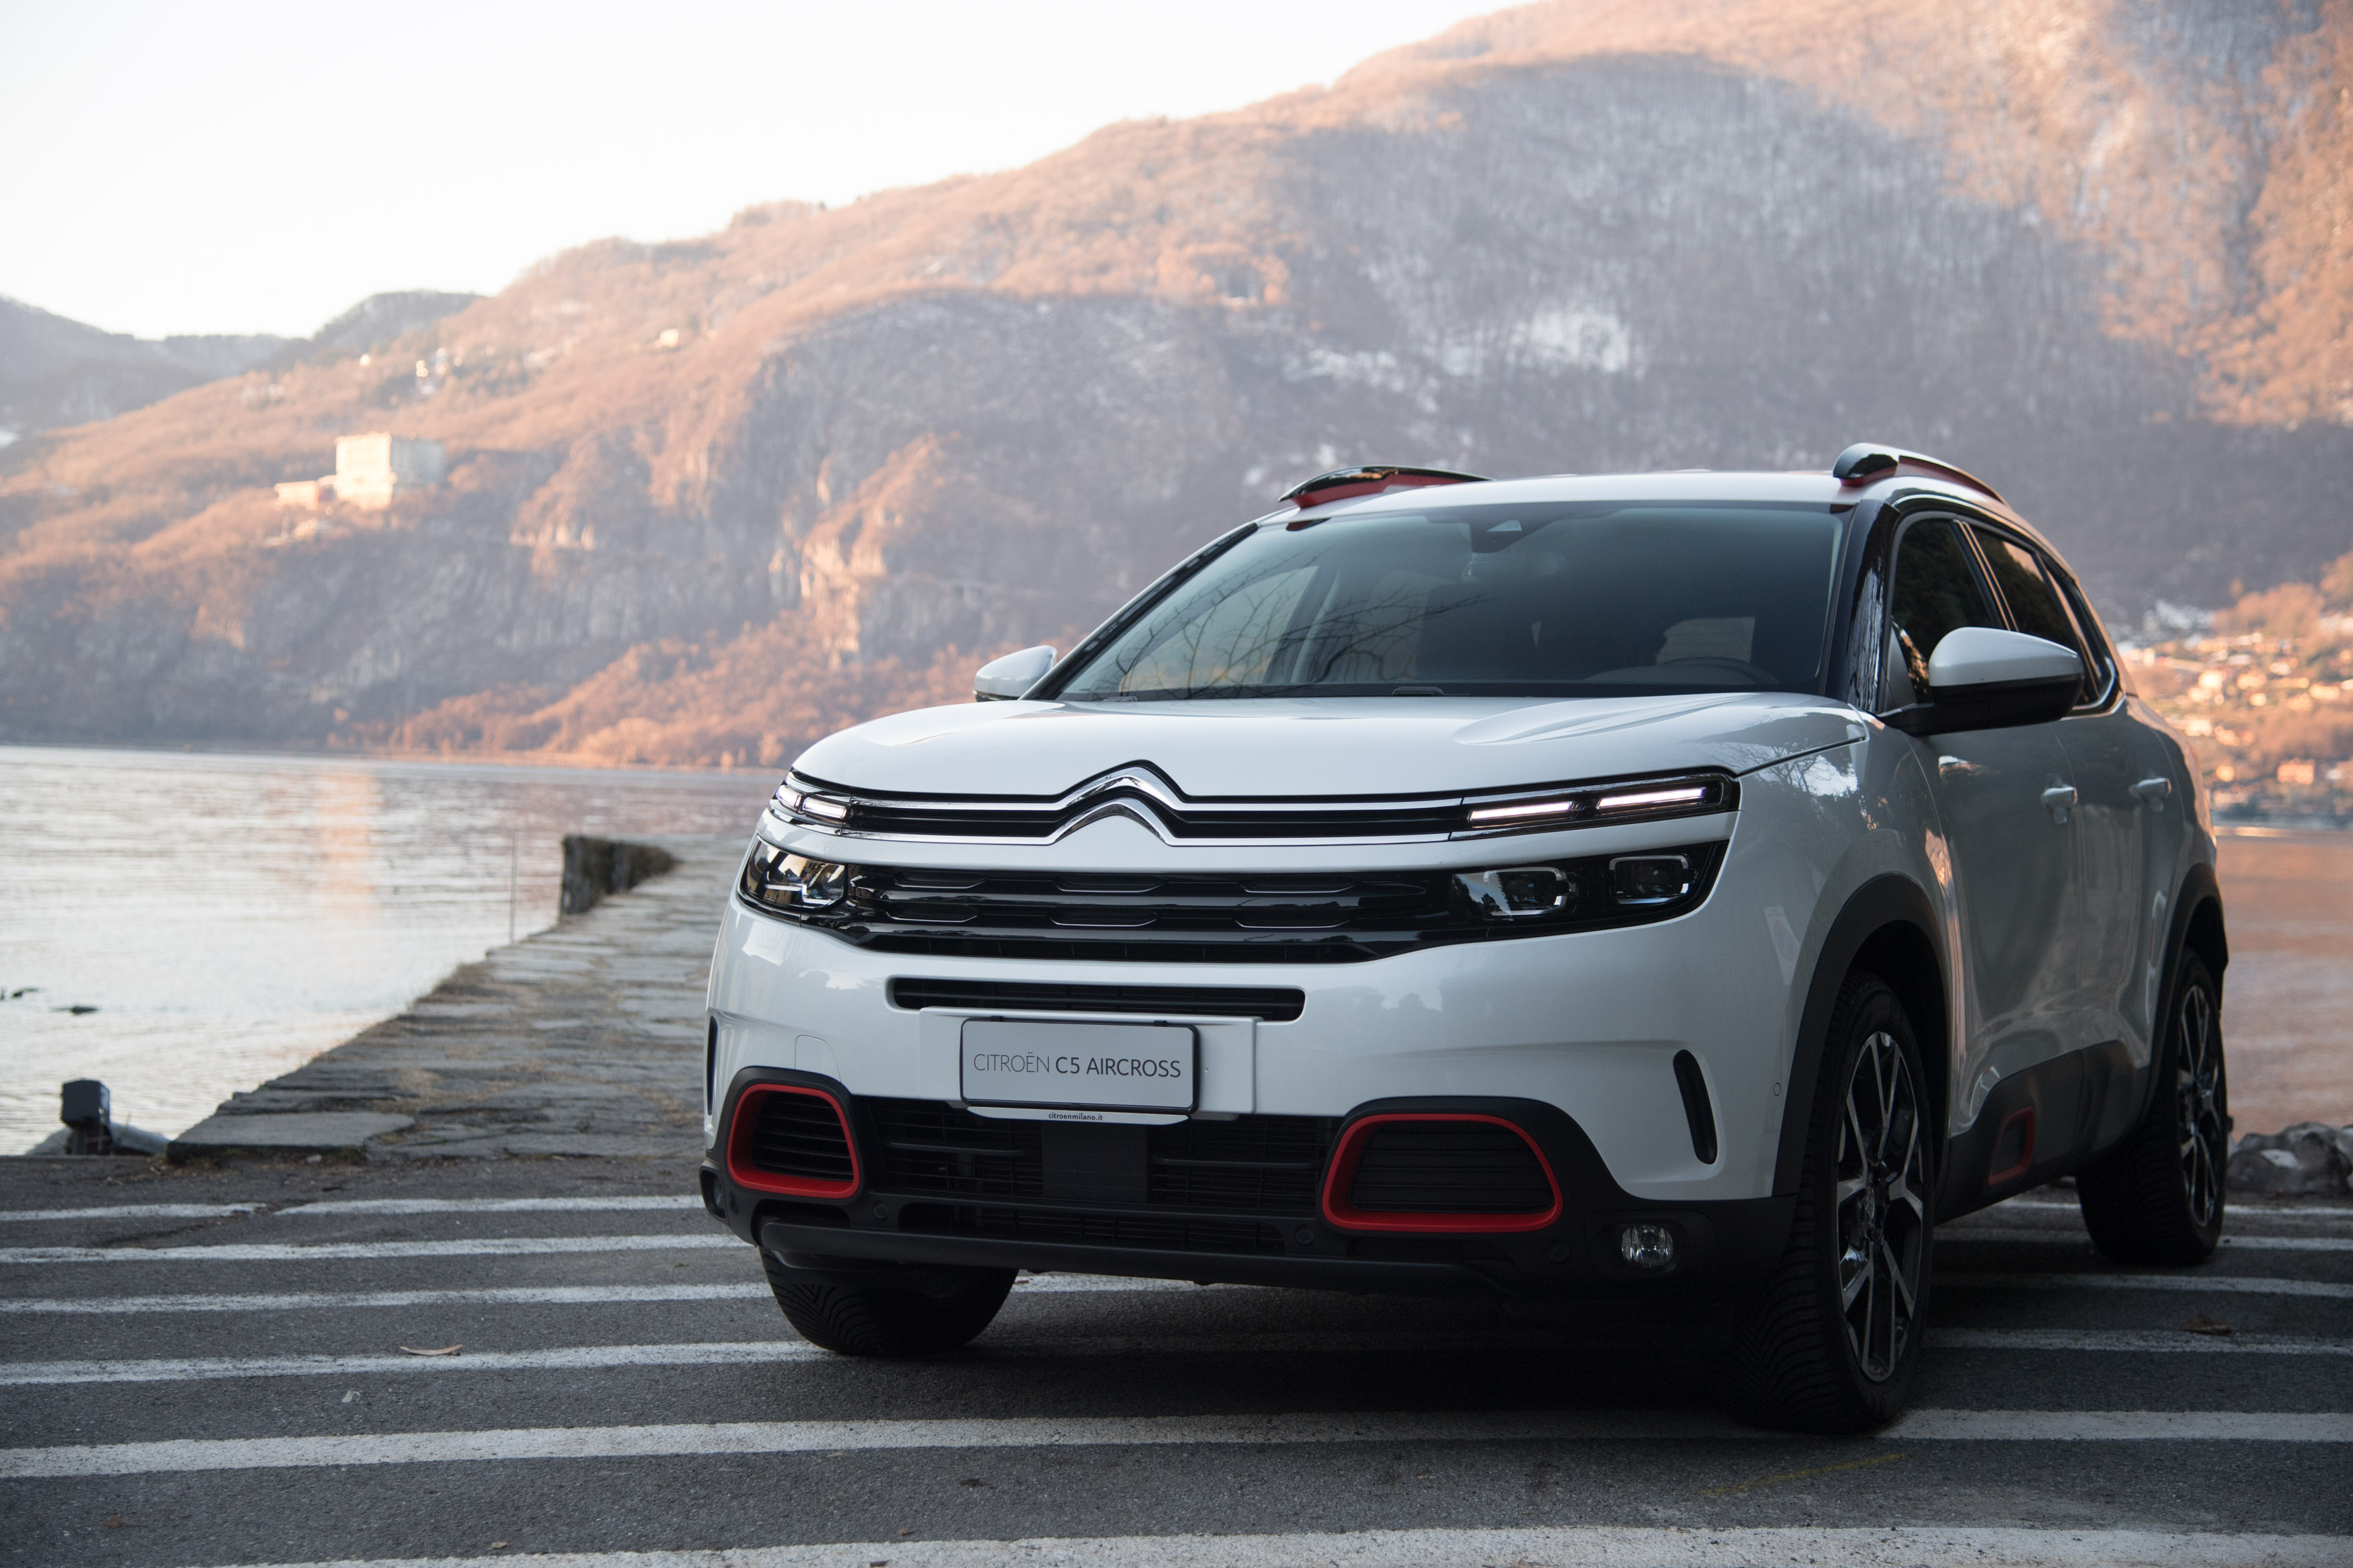 citroen-c5-aircross-fari-full-led-due-livelli